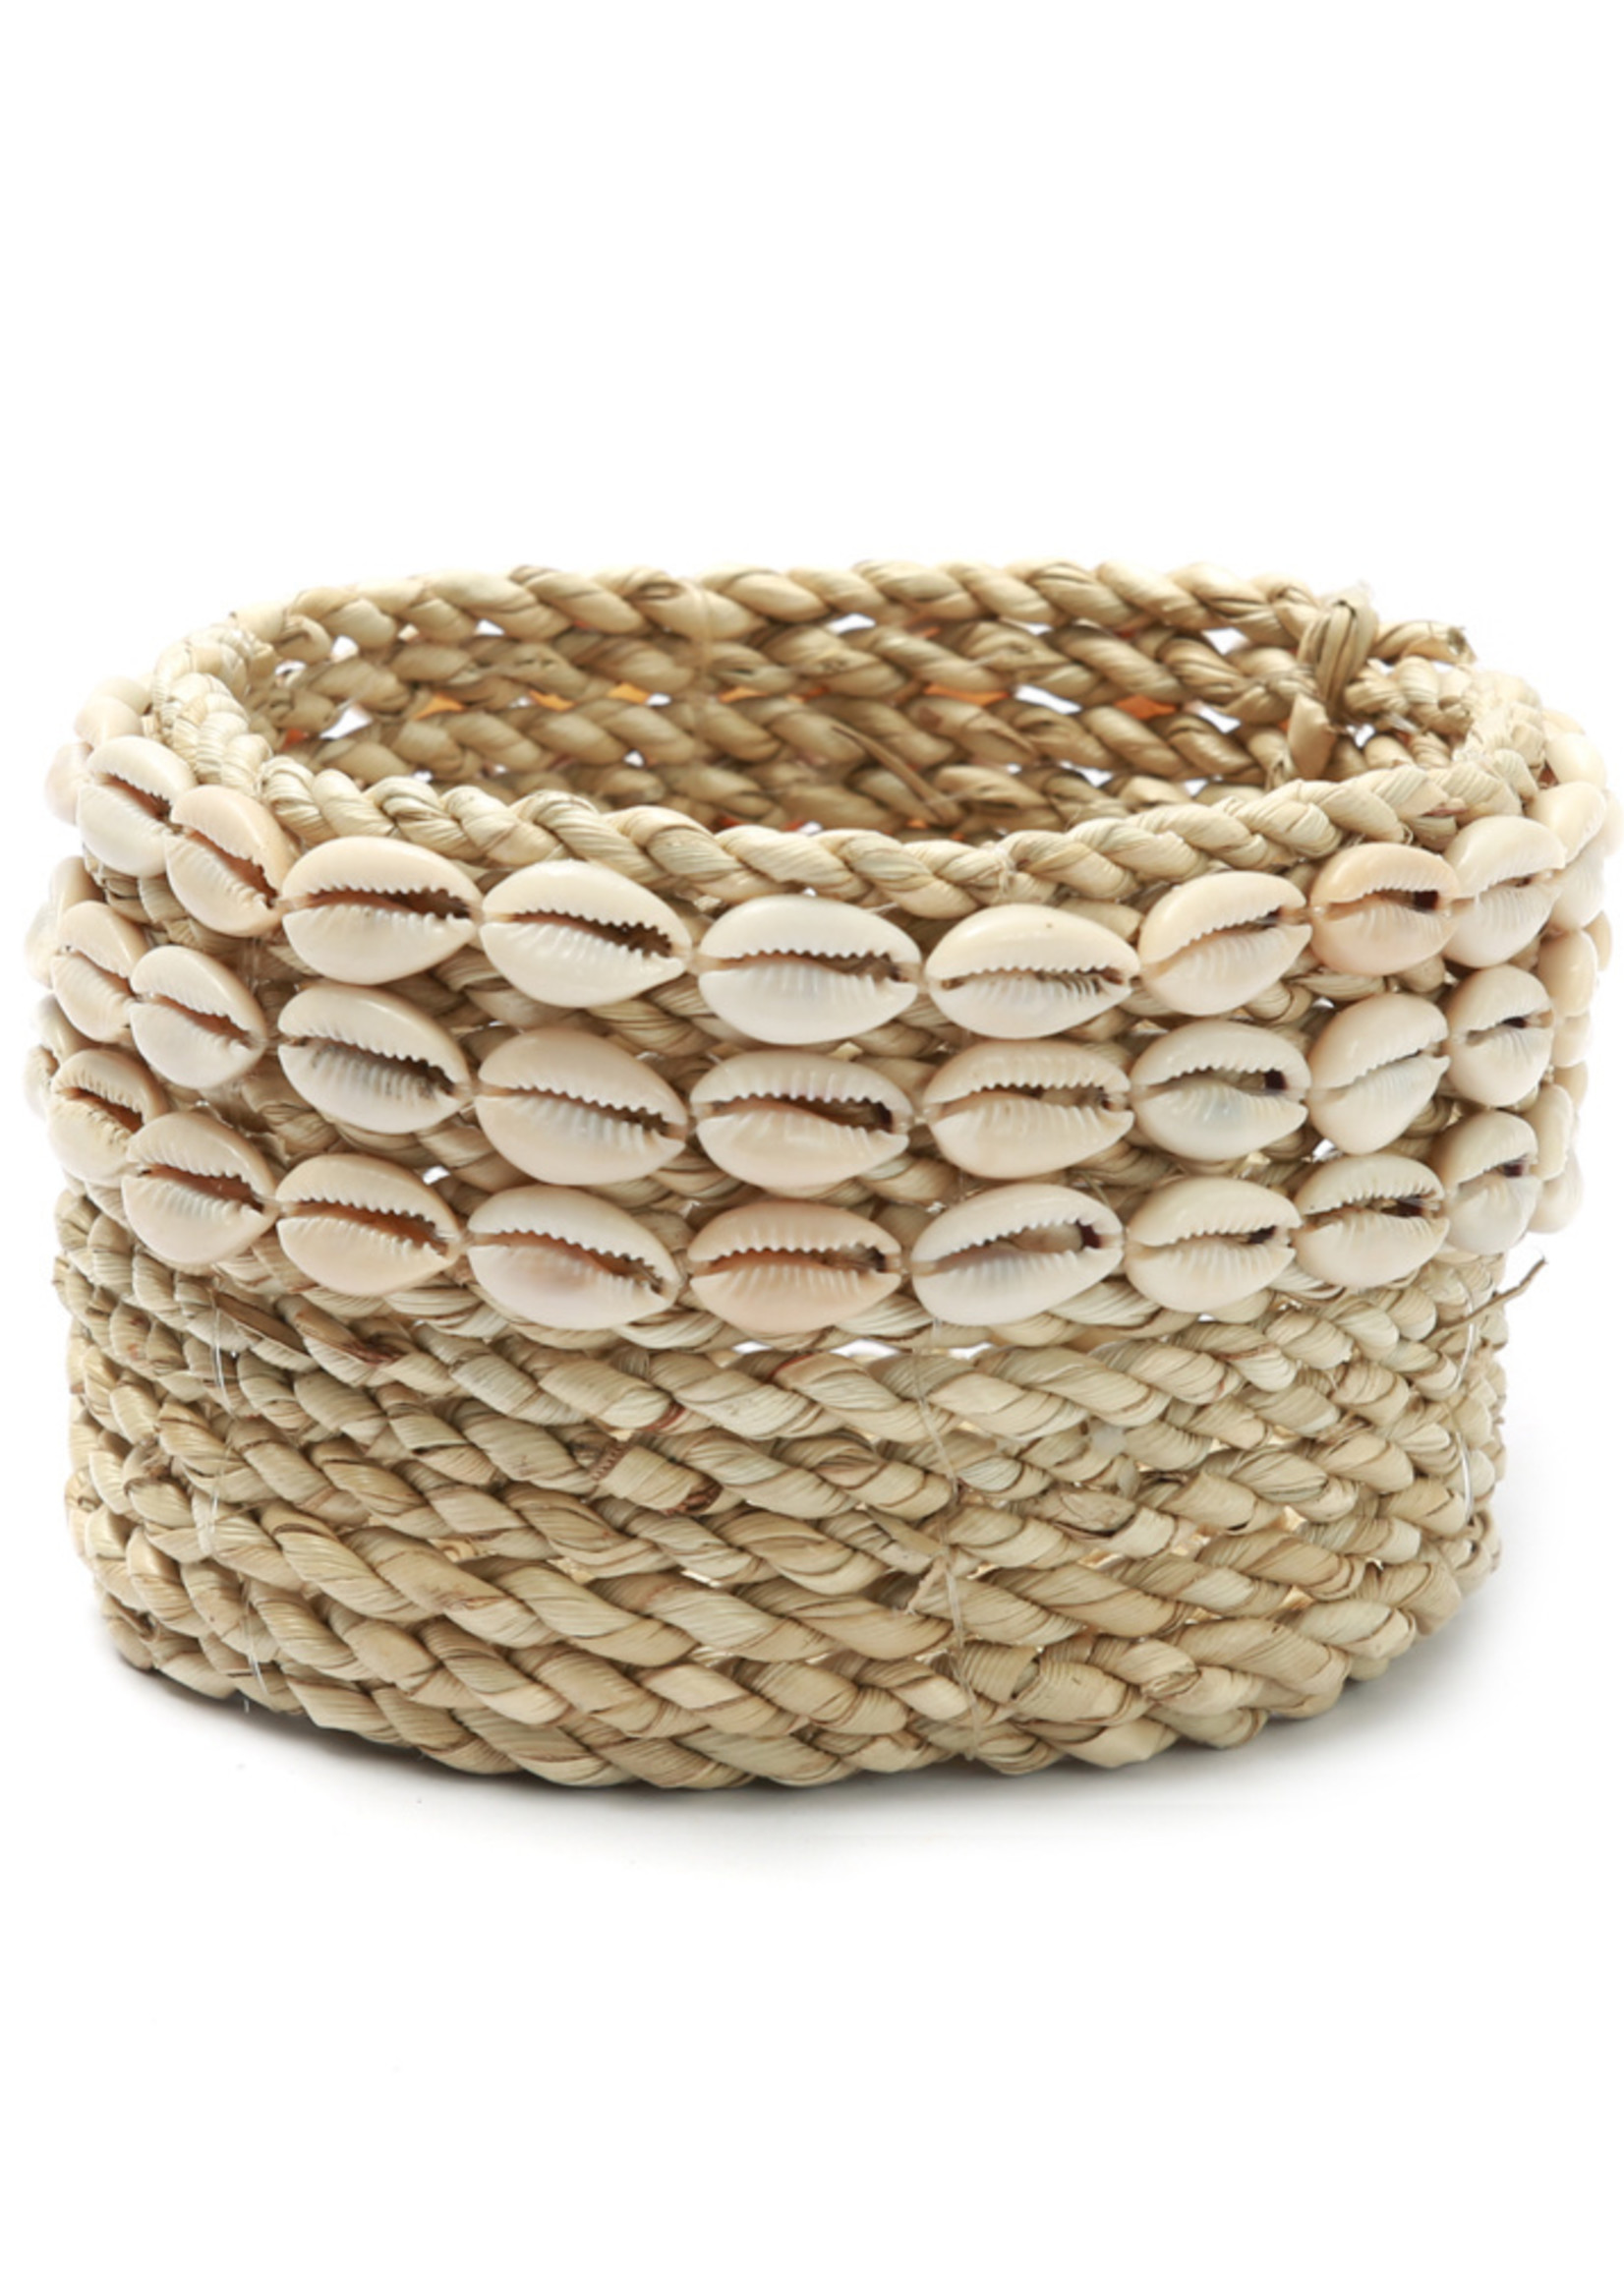 The Weaved Cowrie Basket #2 - Natural